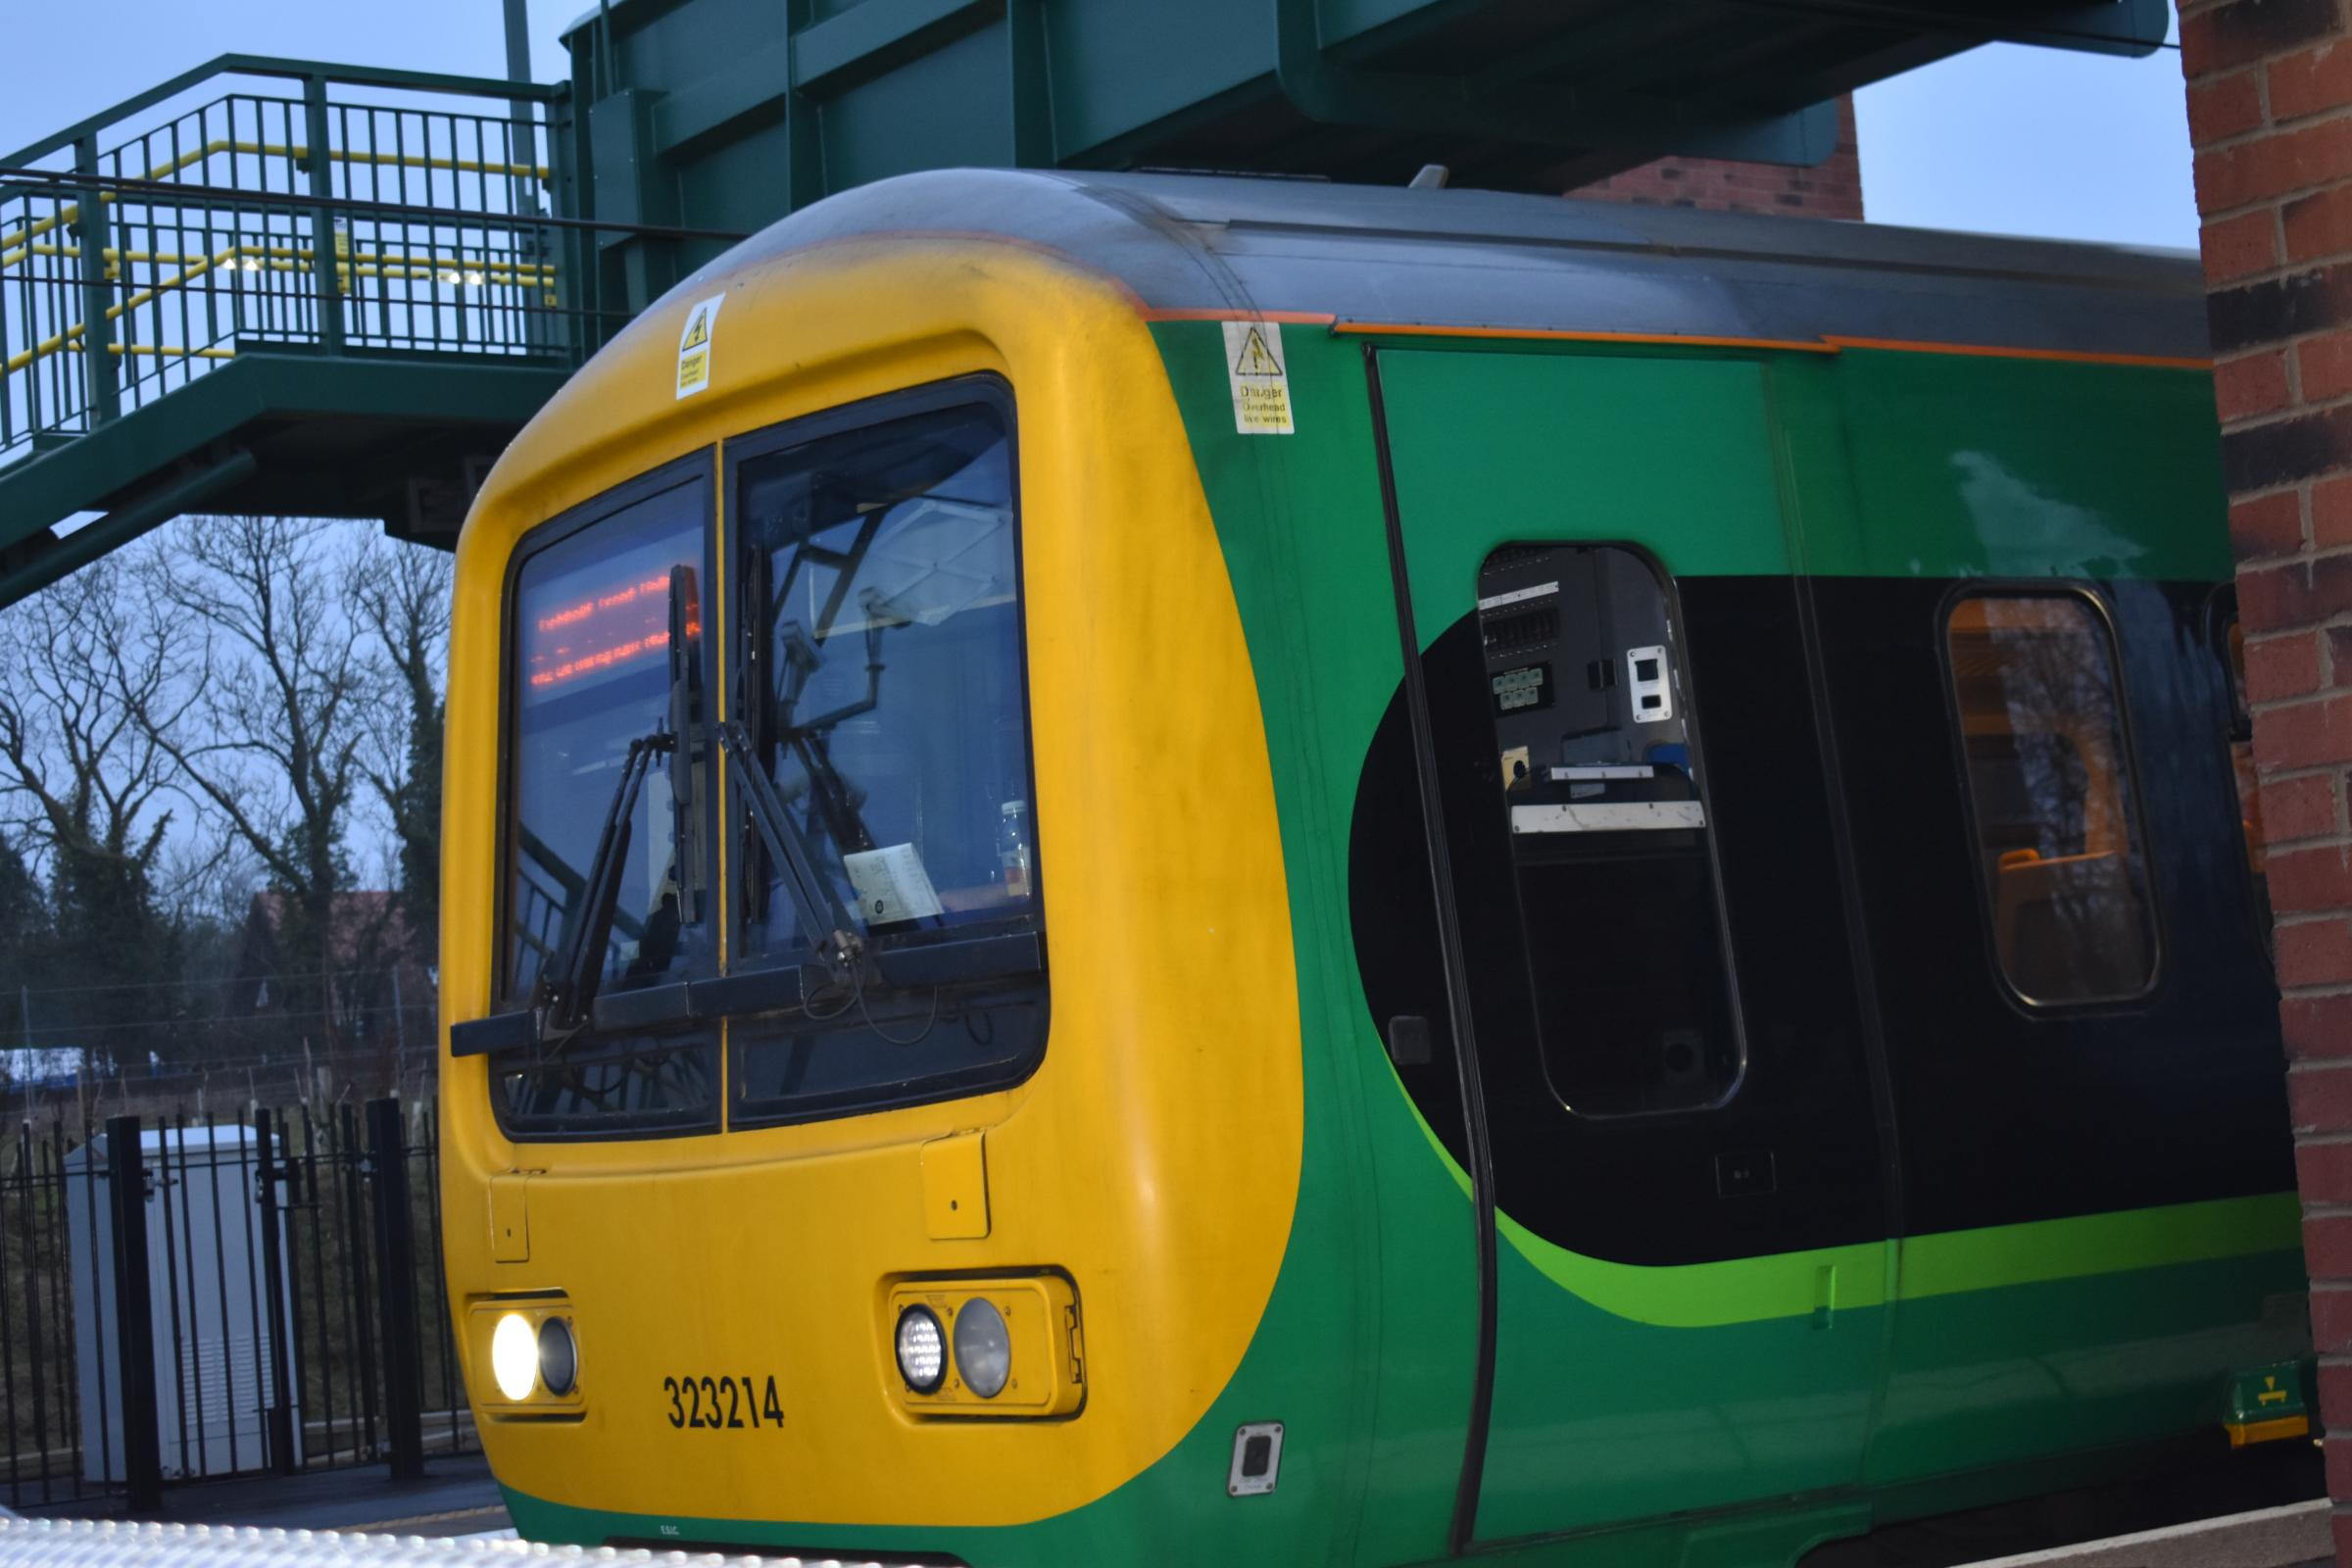 Train delays after ambulance called to station due to